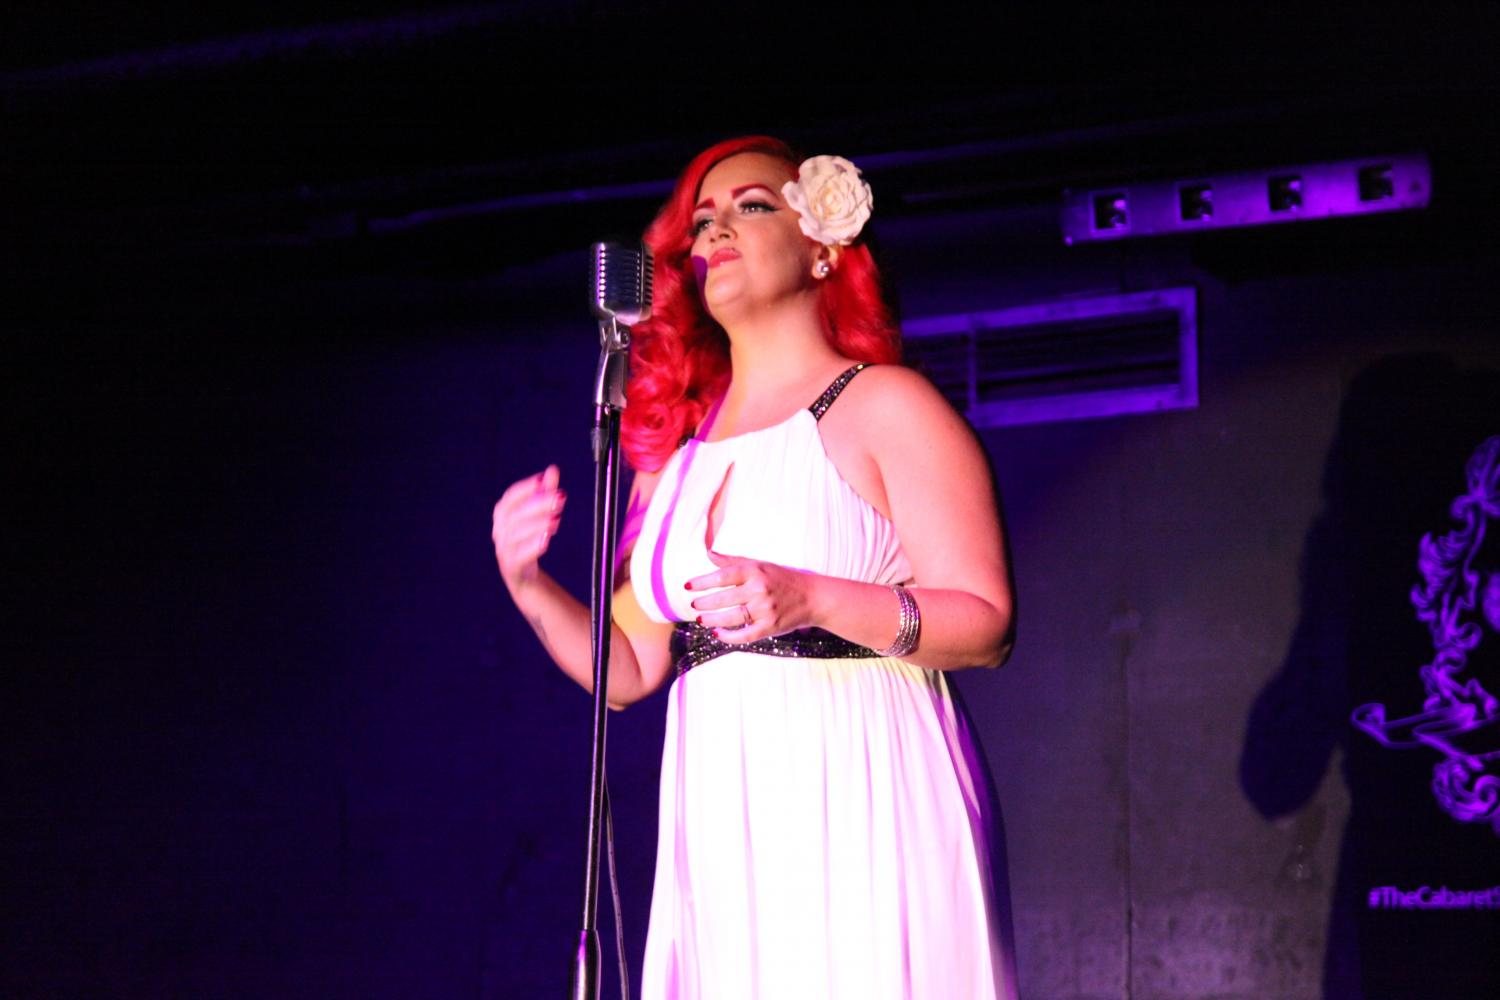 EnVee sings at The Cabaret